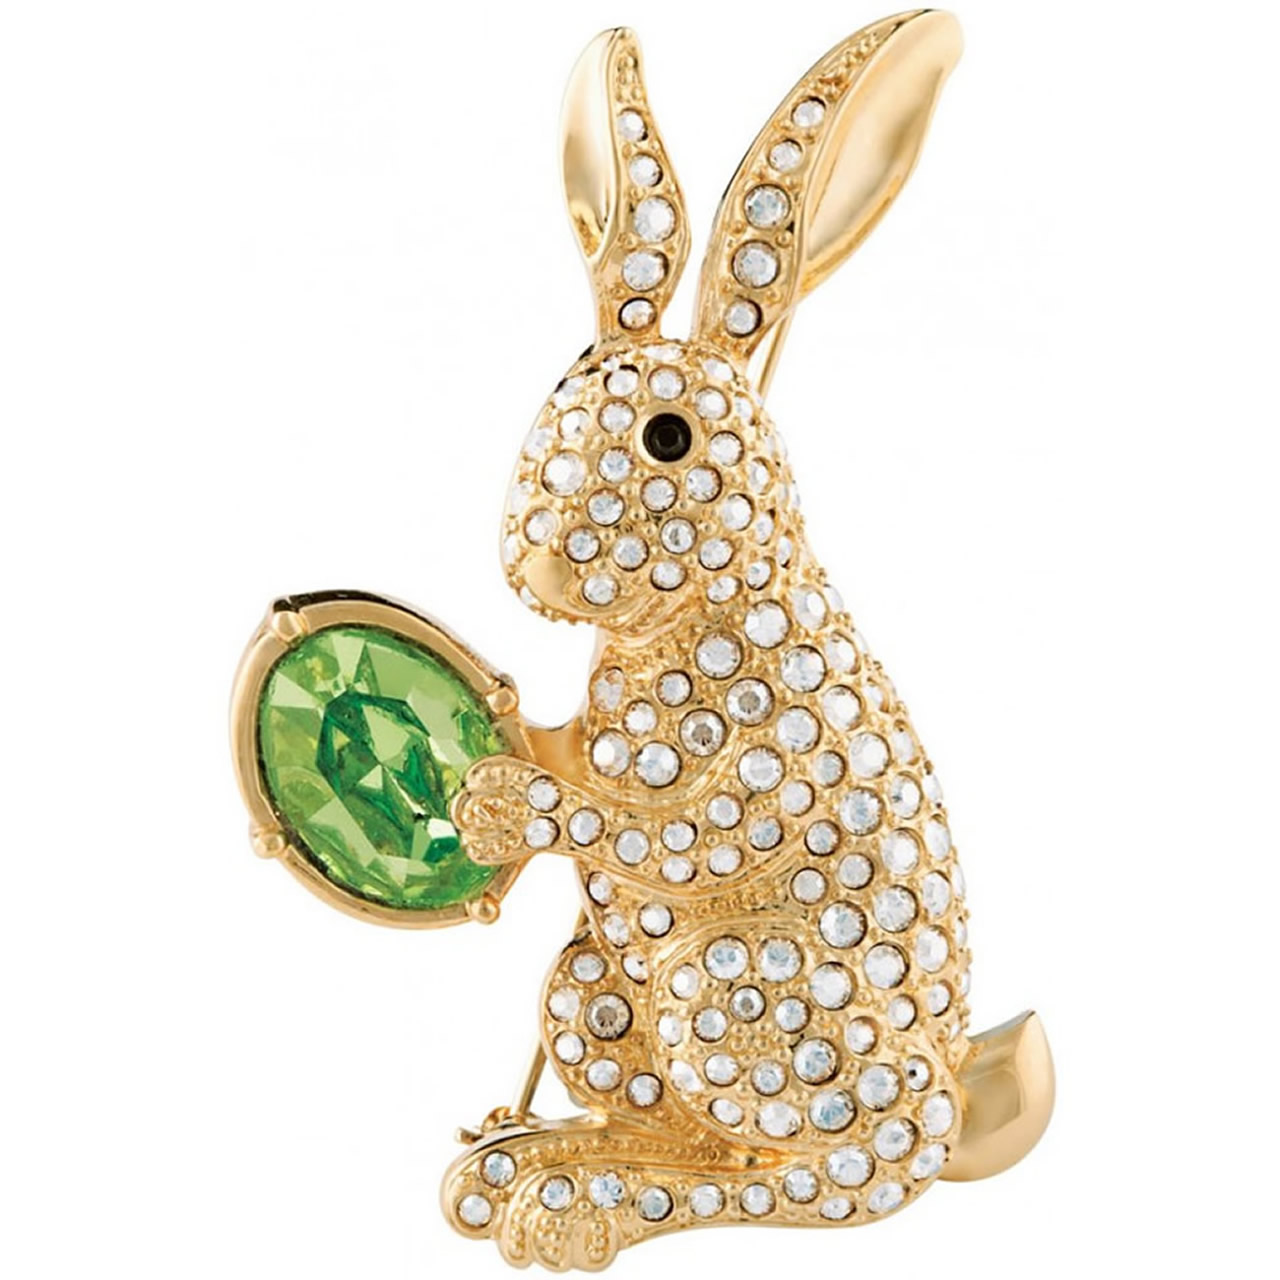 Silver, Green And Gold Plated Festive Easter Bunny Brooch